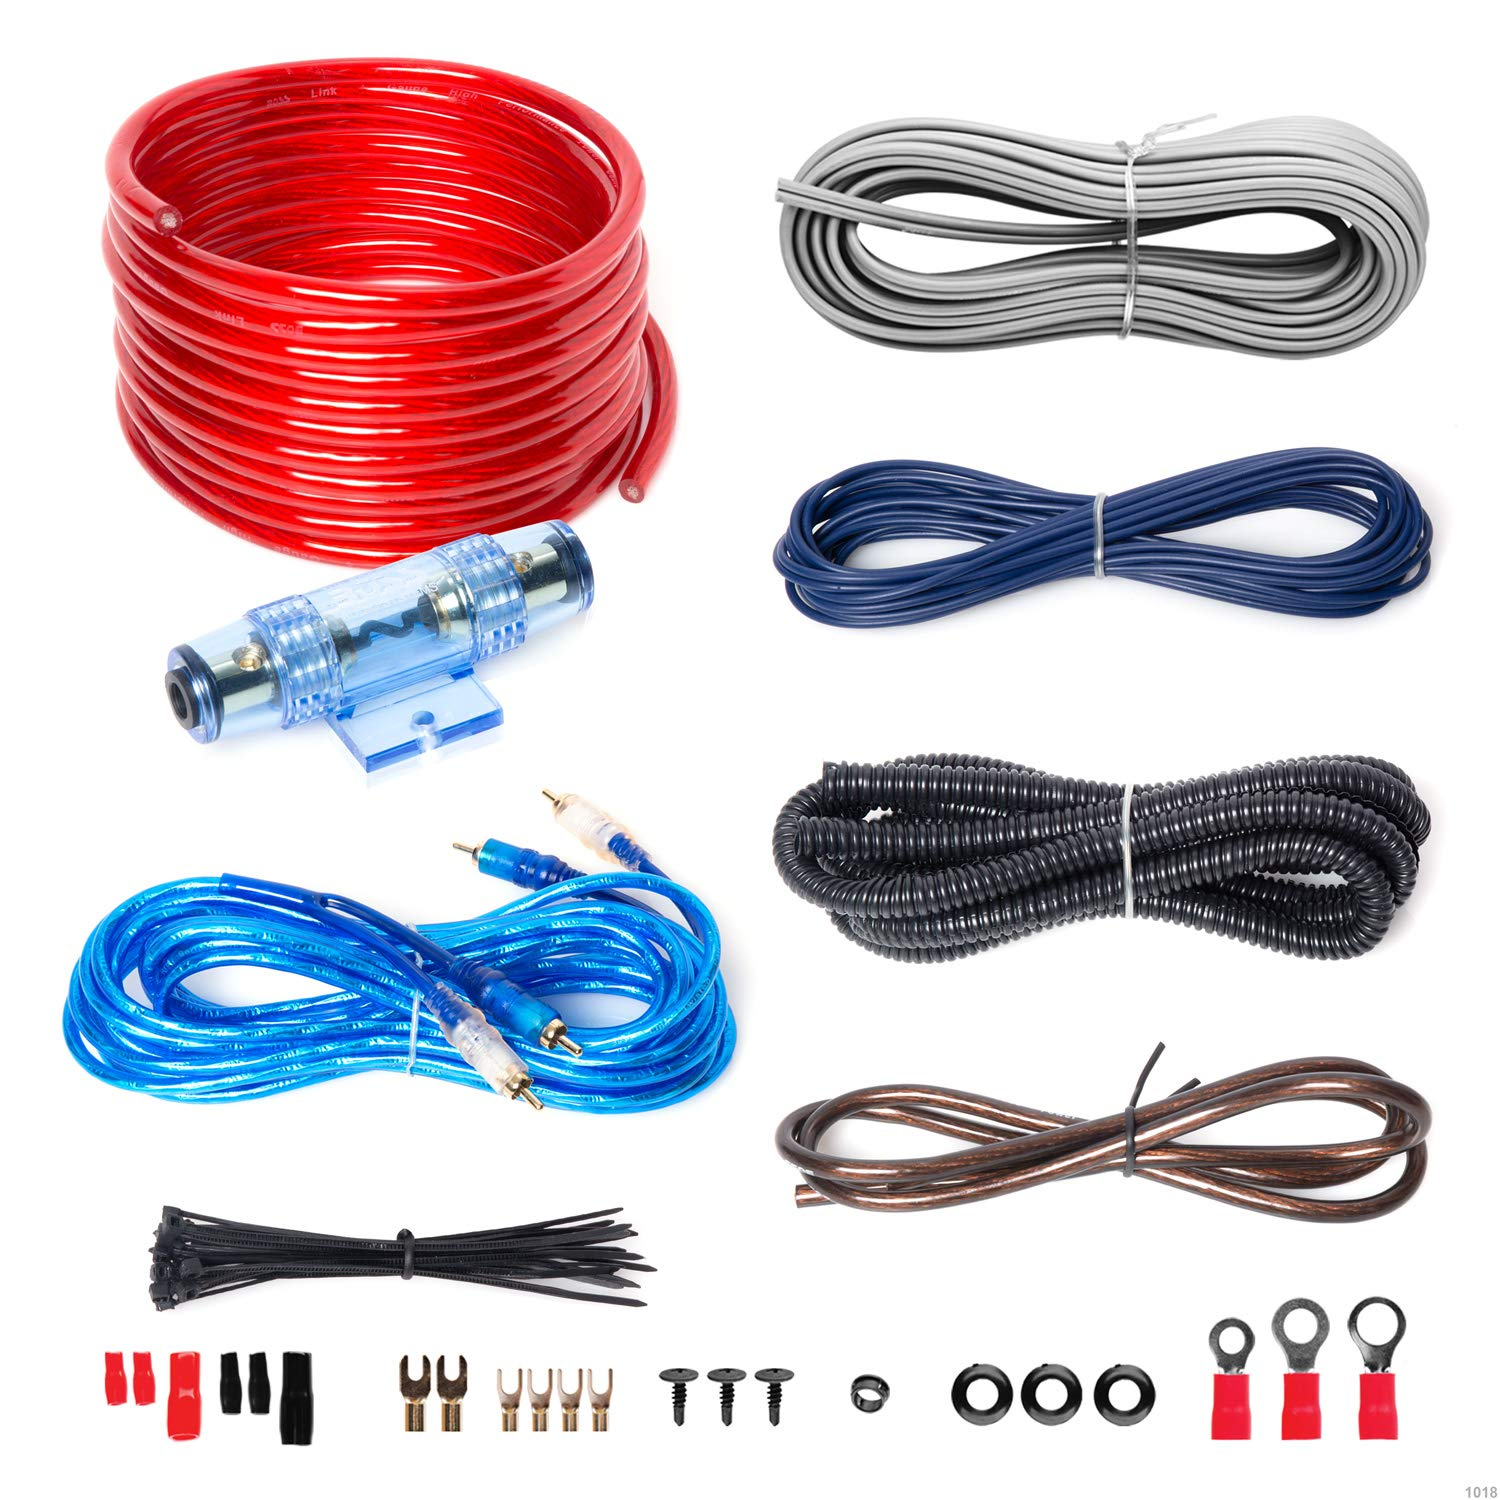 Boss Audio Kit2 8 Gauge Amplifier Installation Wiring Money By Walmart Kit A Car Helps You Make Connections And Brings Power To Your Radio